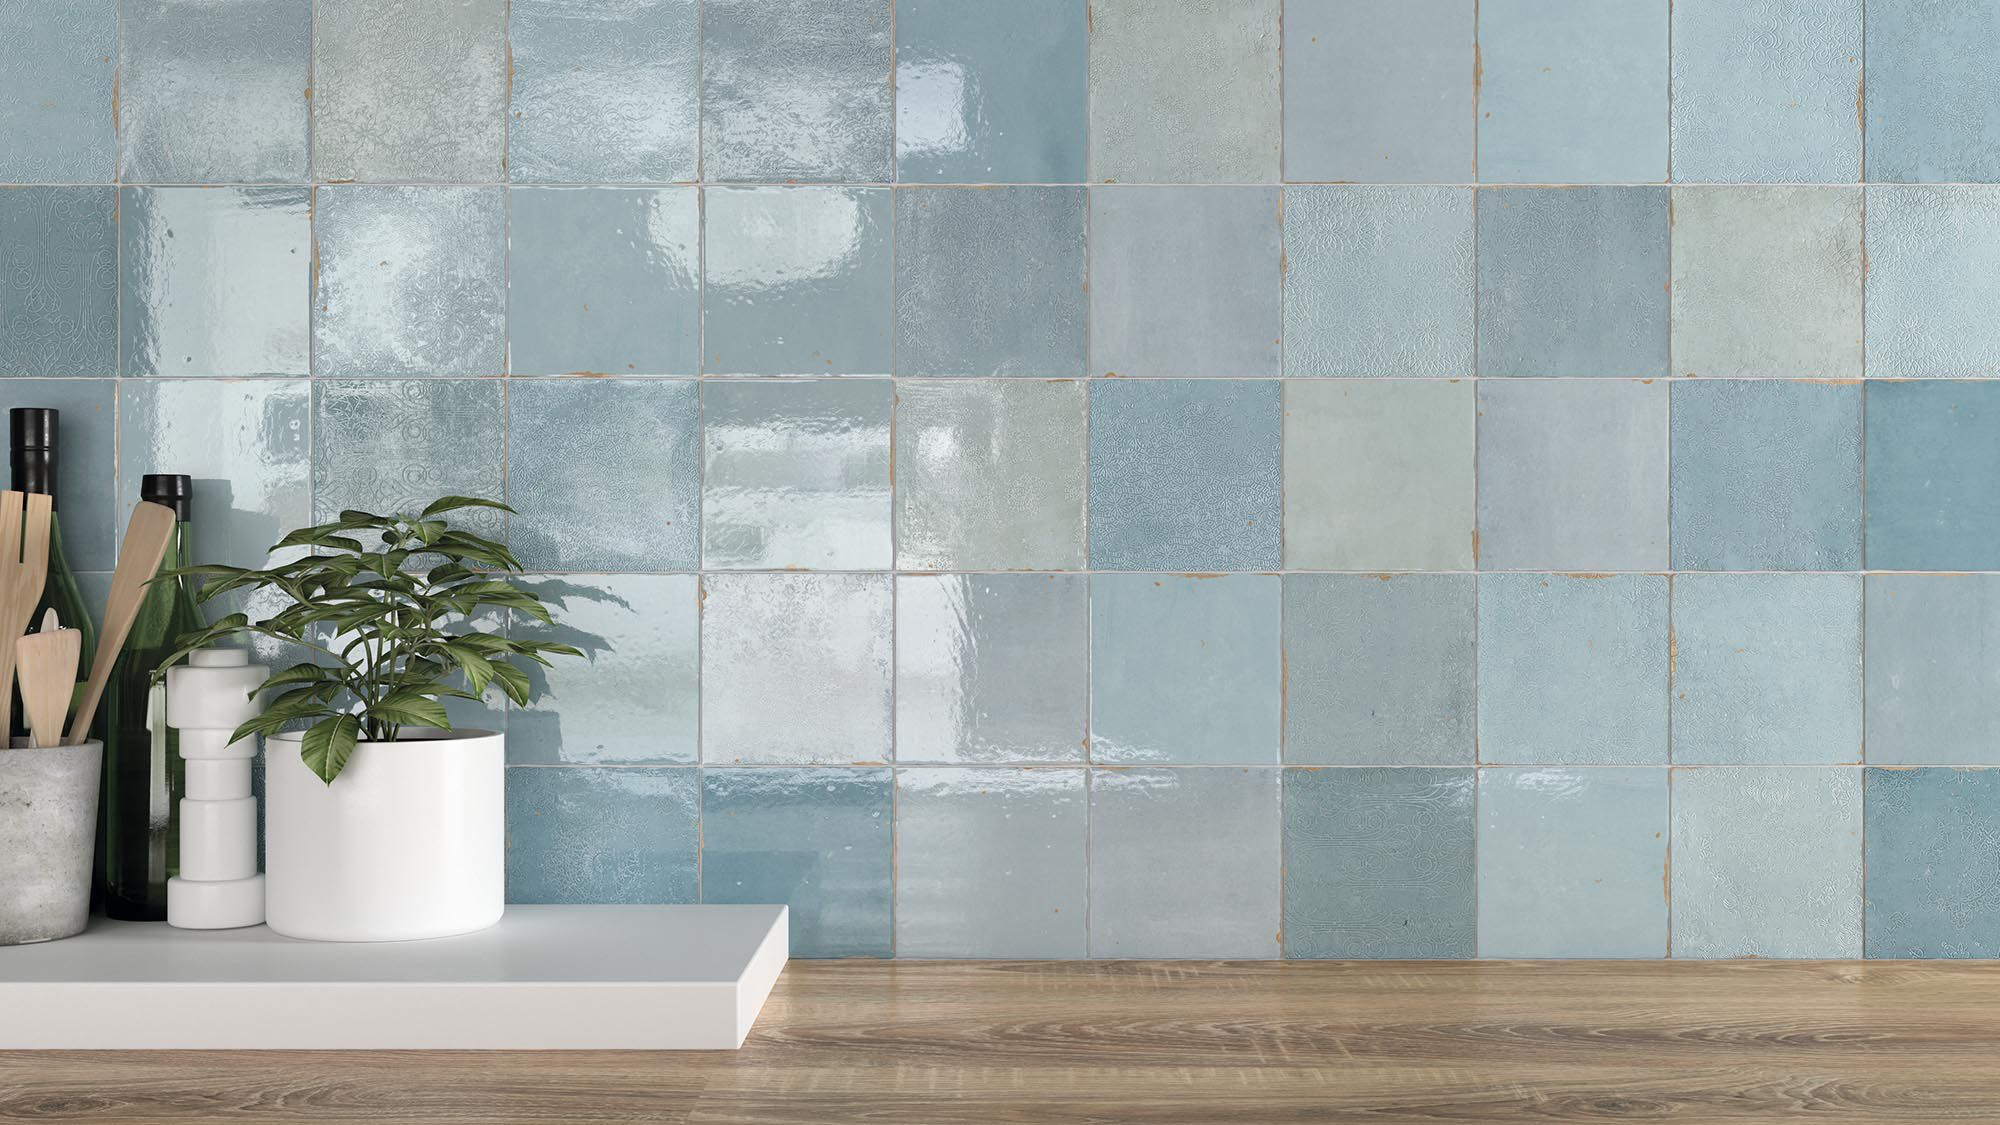 Indoor tile / wall / ceramic / patterned - ZELLIGE DECOR - WOW Design EU